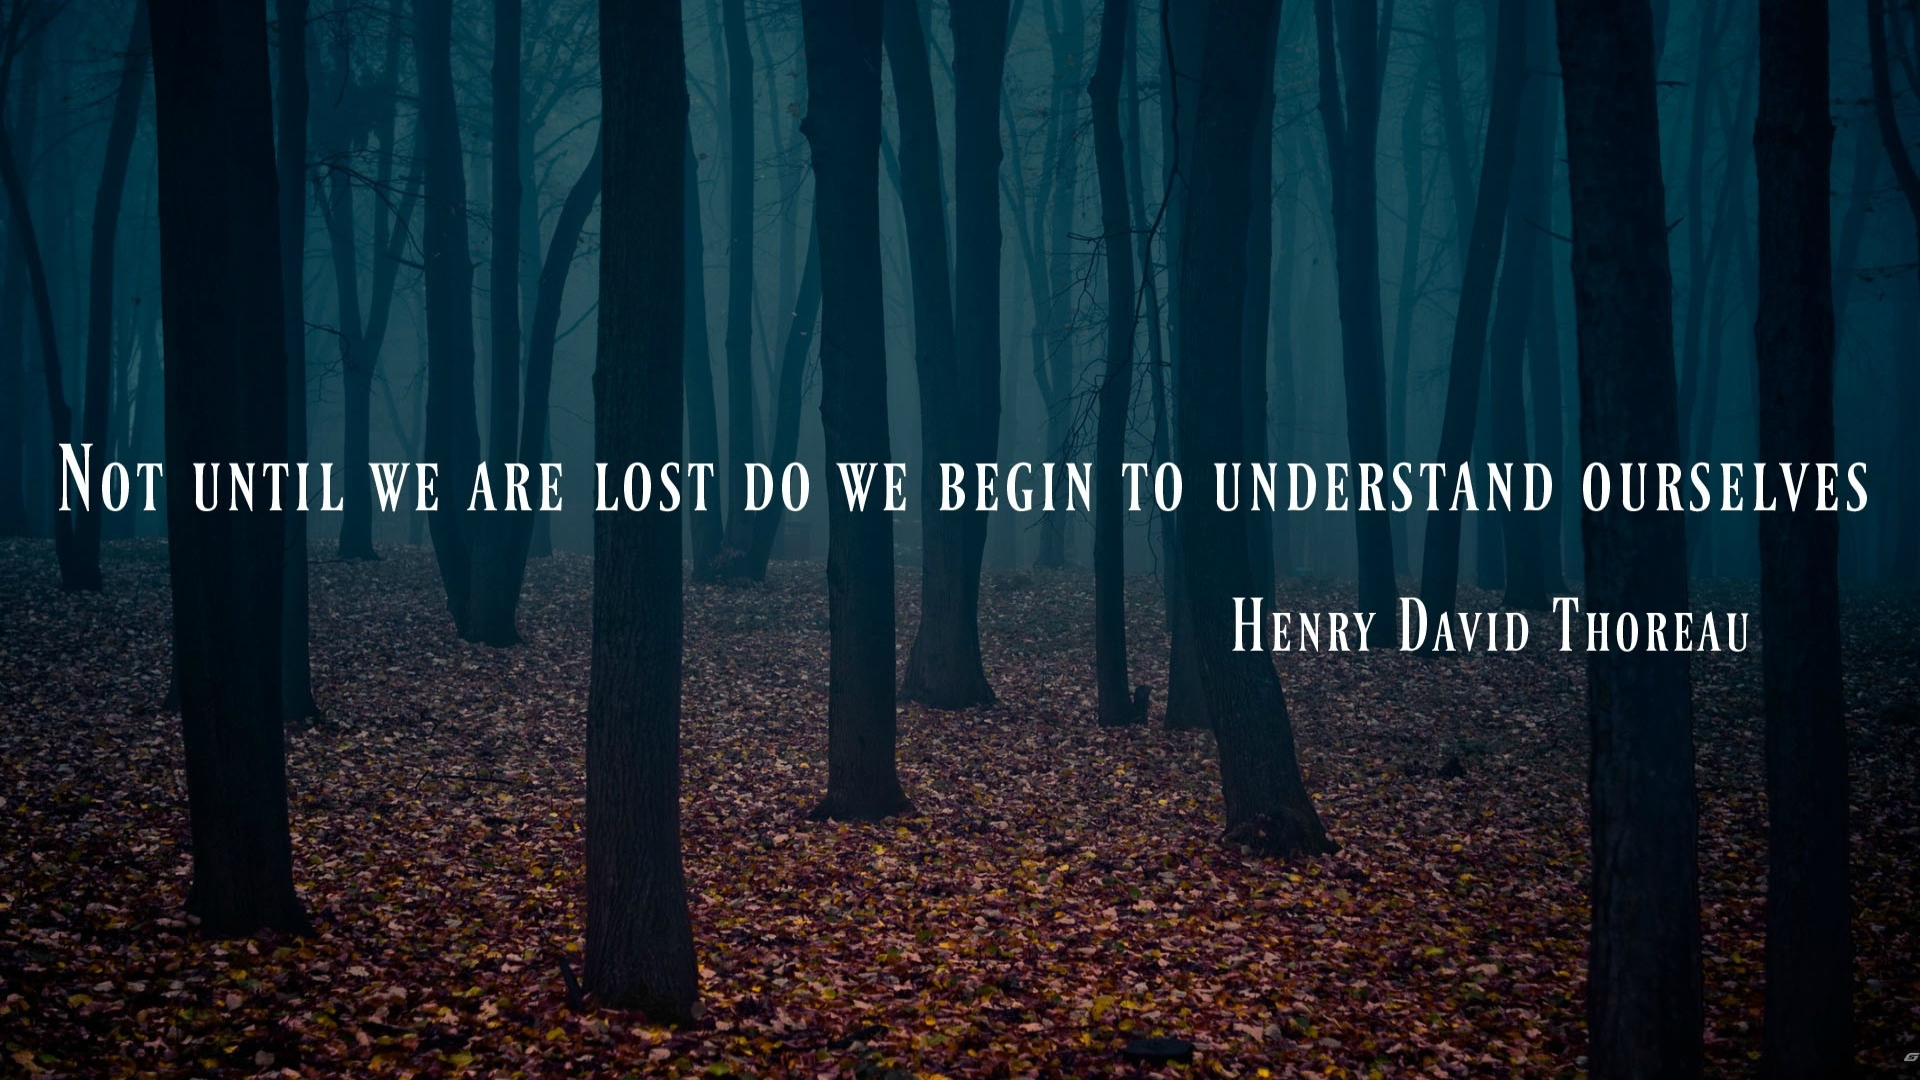 Not until we are lost to we begin to understand ourselves – Henry David Thoreau